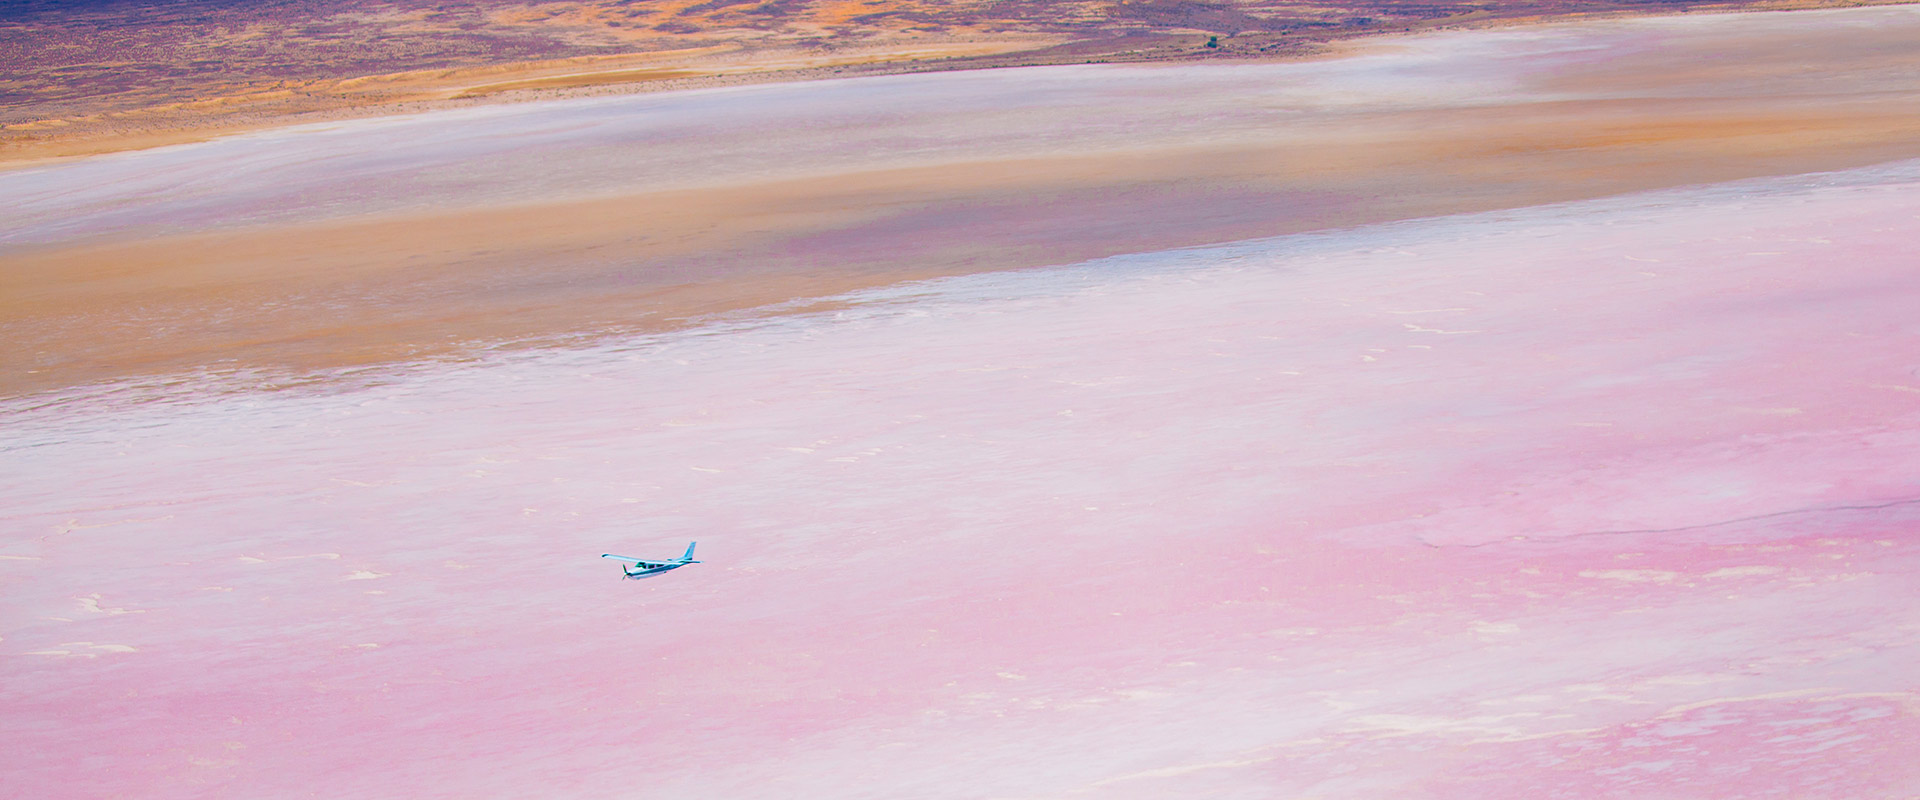 Air Tours of Australia | Lake Eyre, South Australia